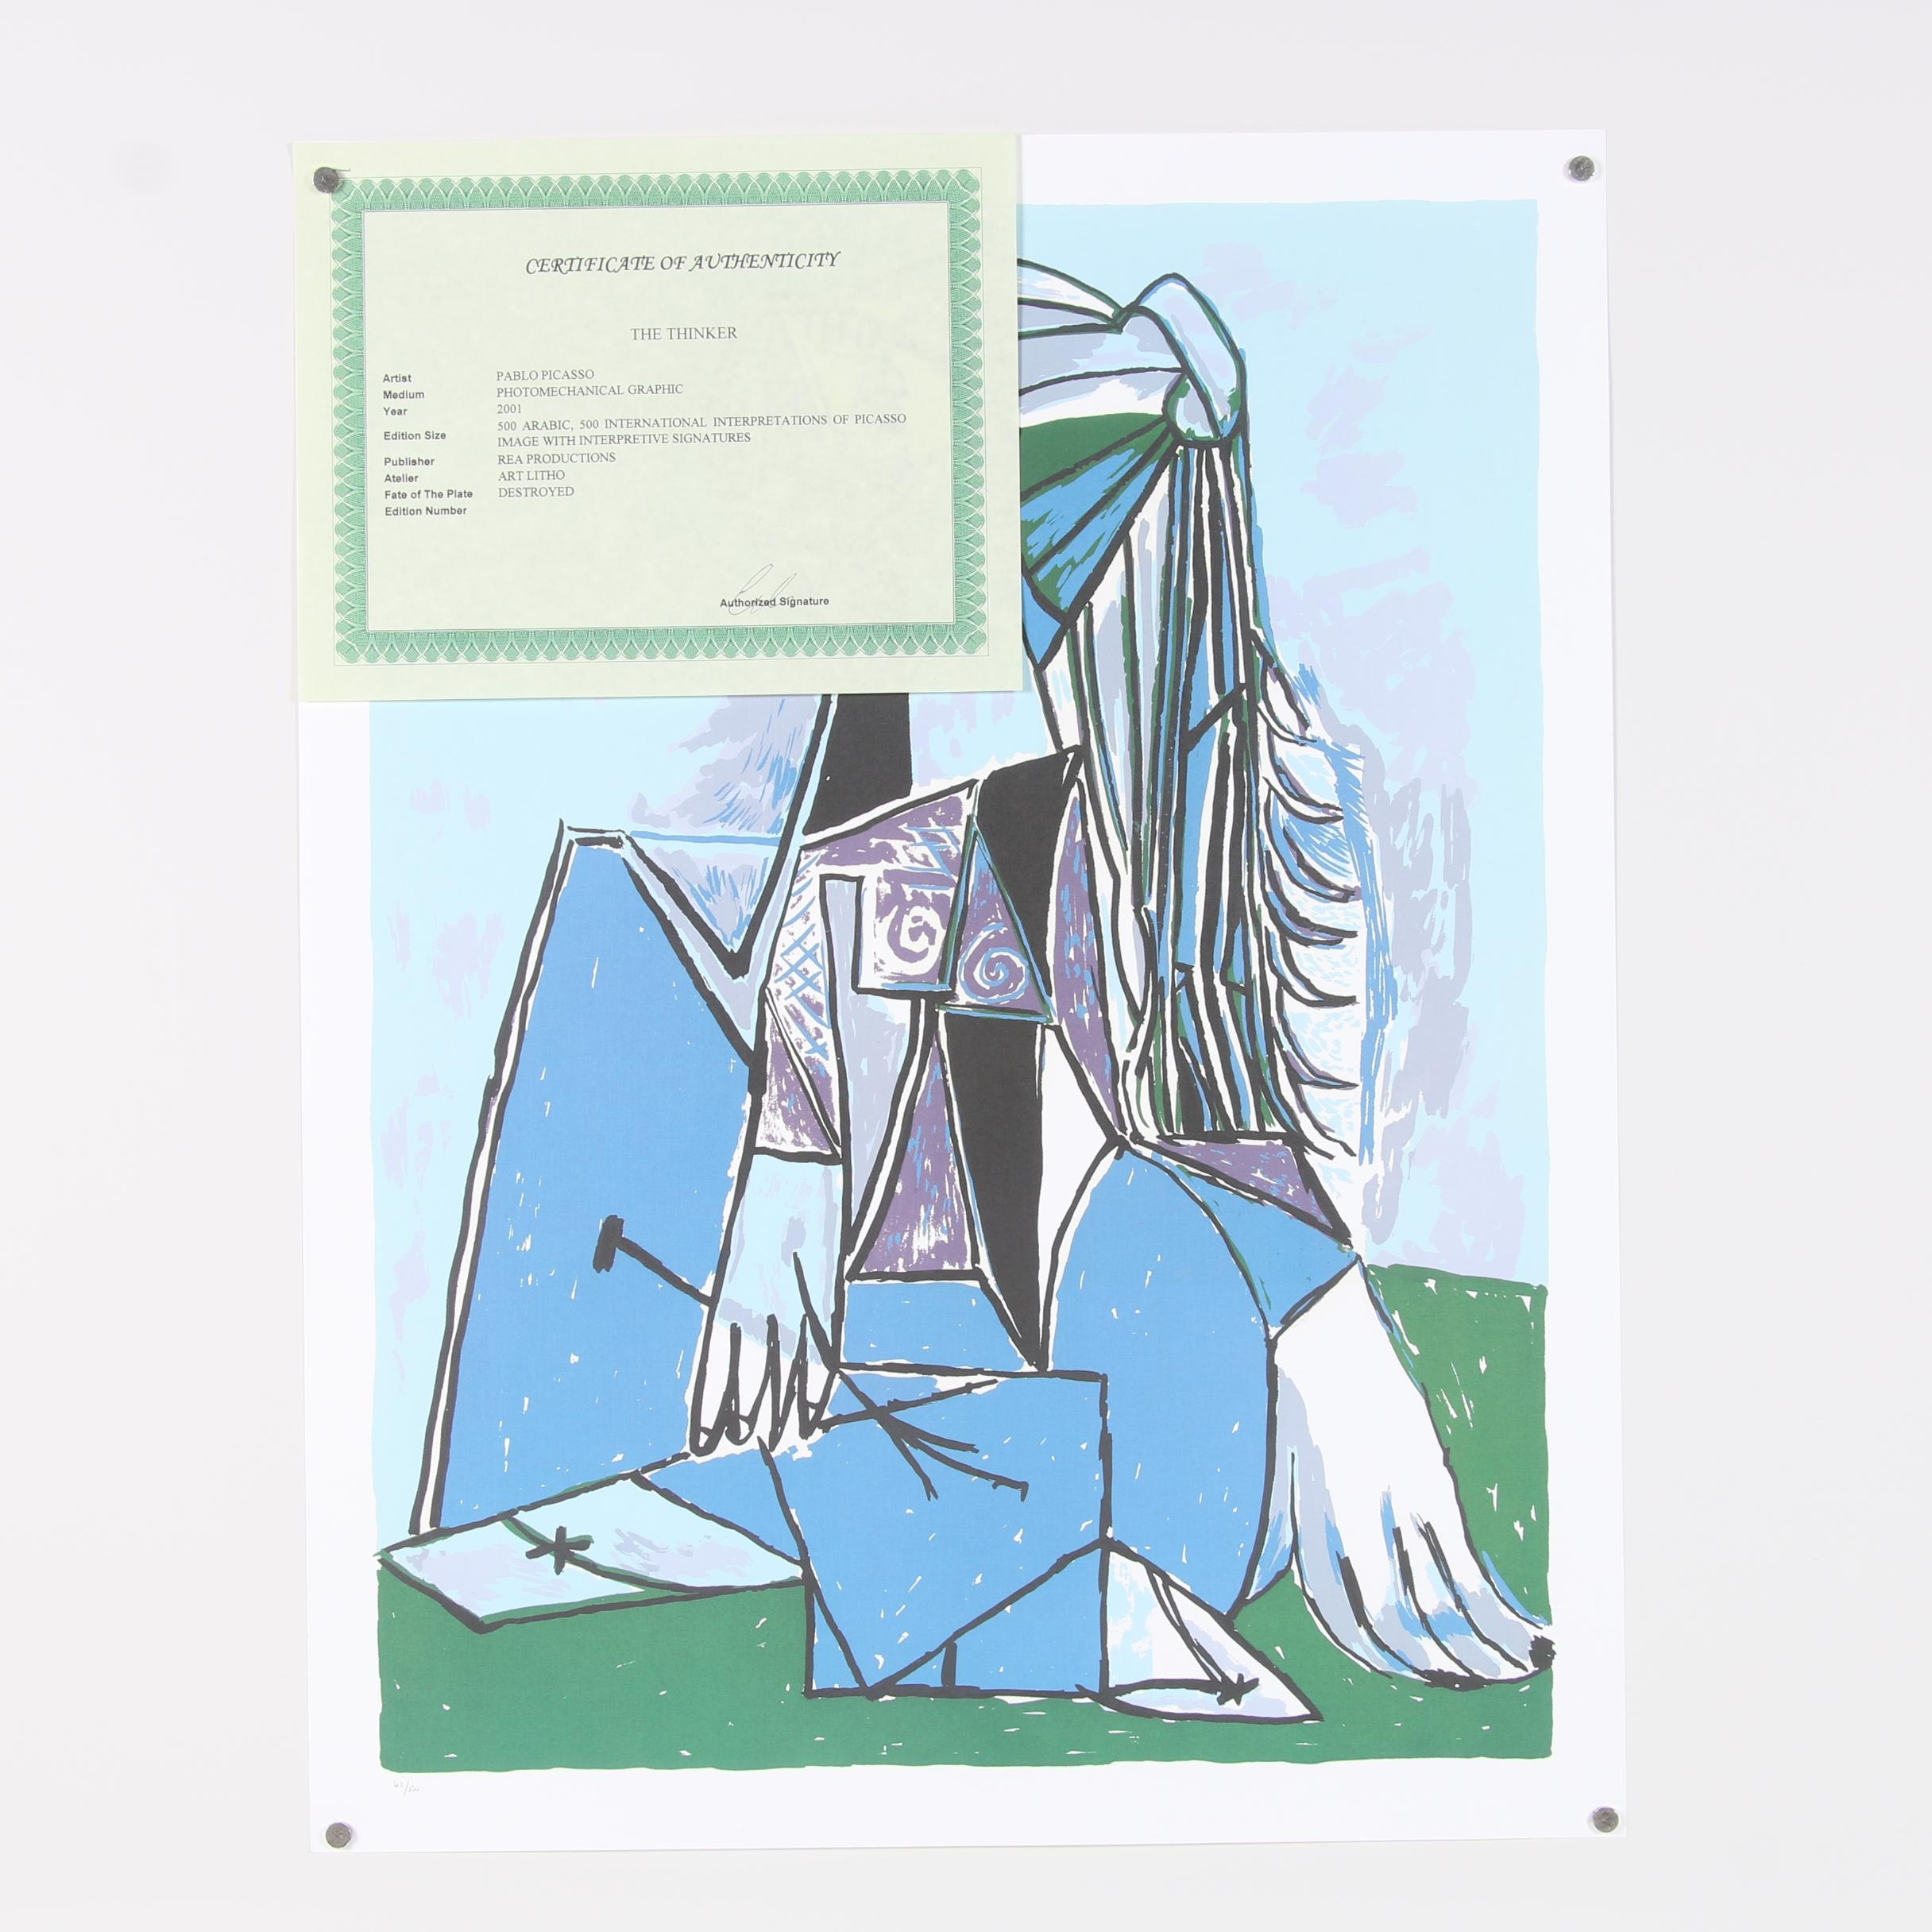 """2001 Offset Lithograph after Pablo Picasso """"The Thinker"""""""